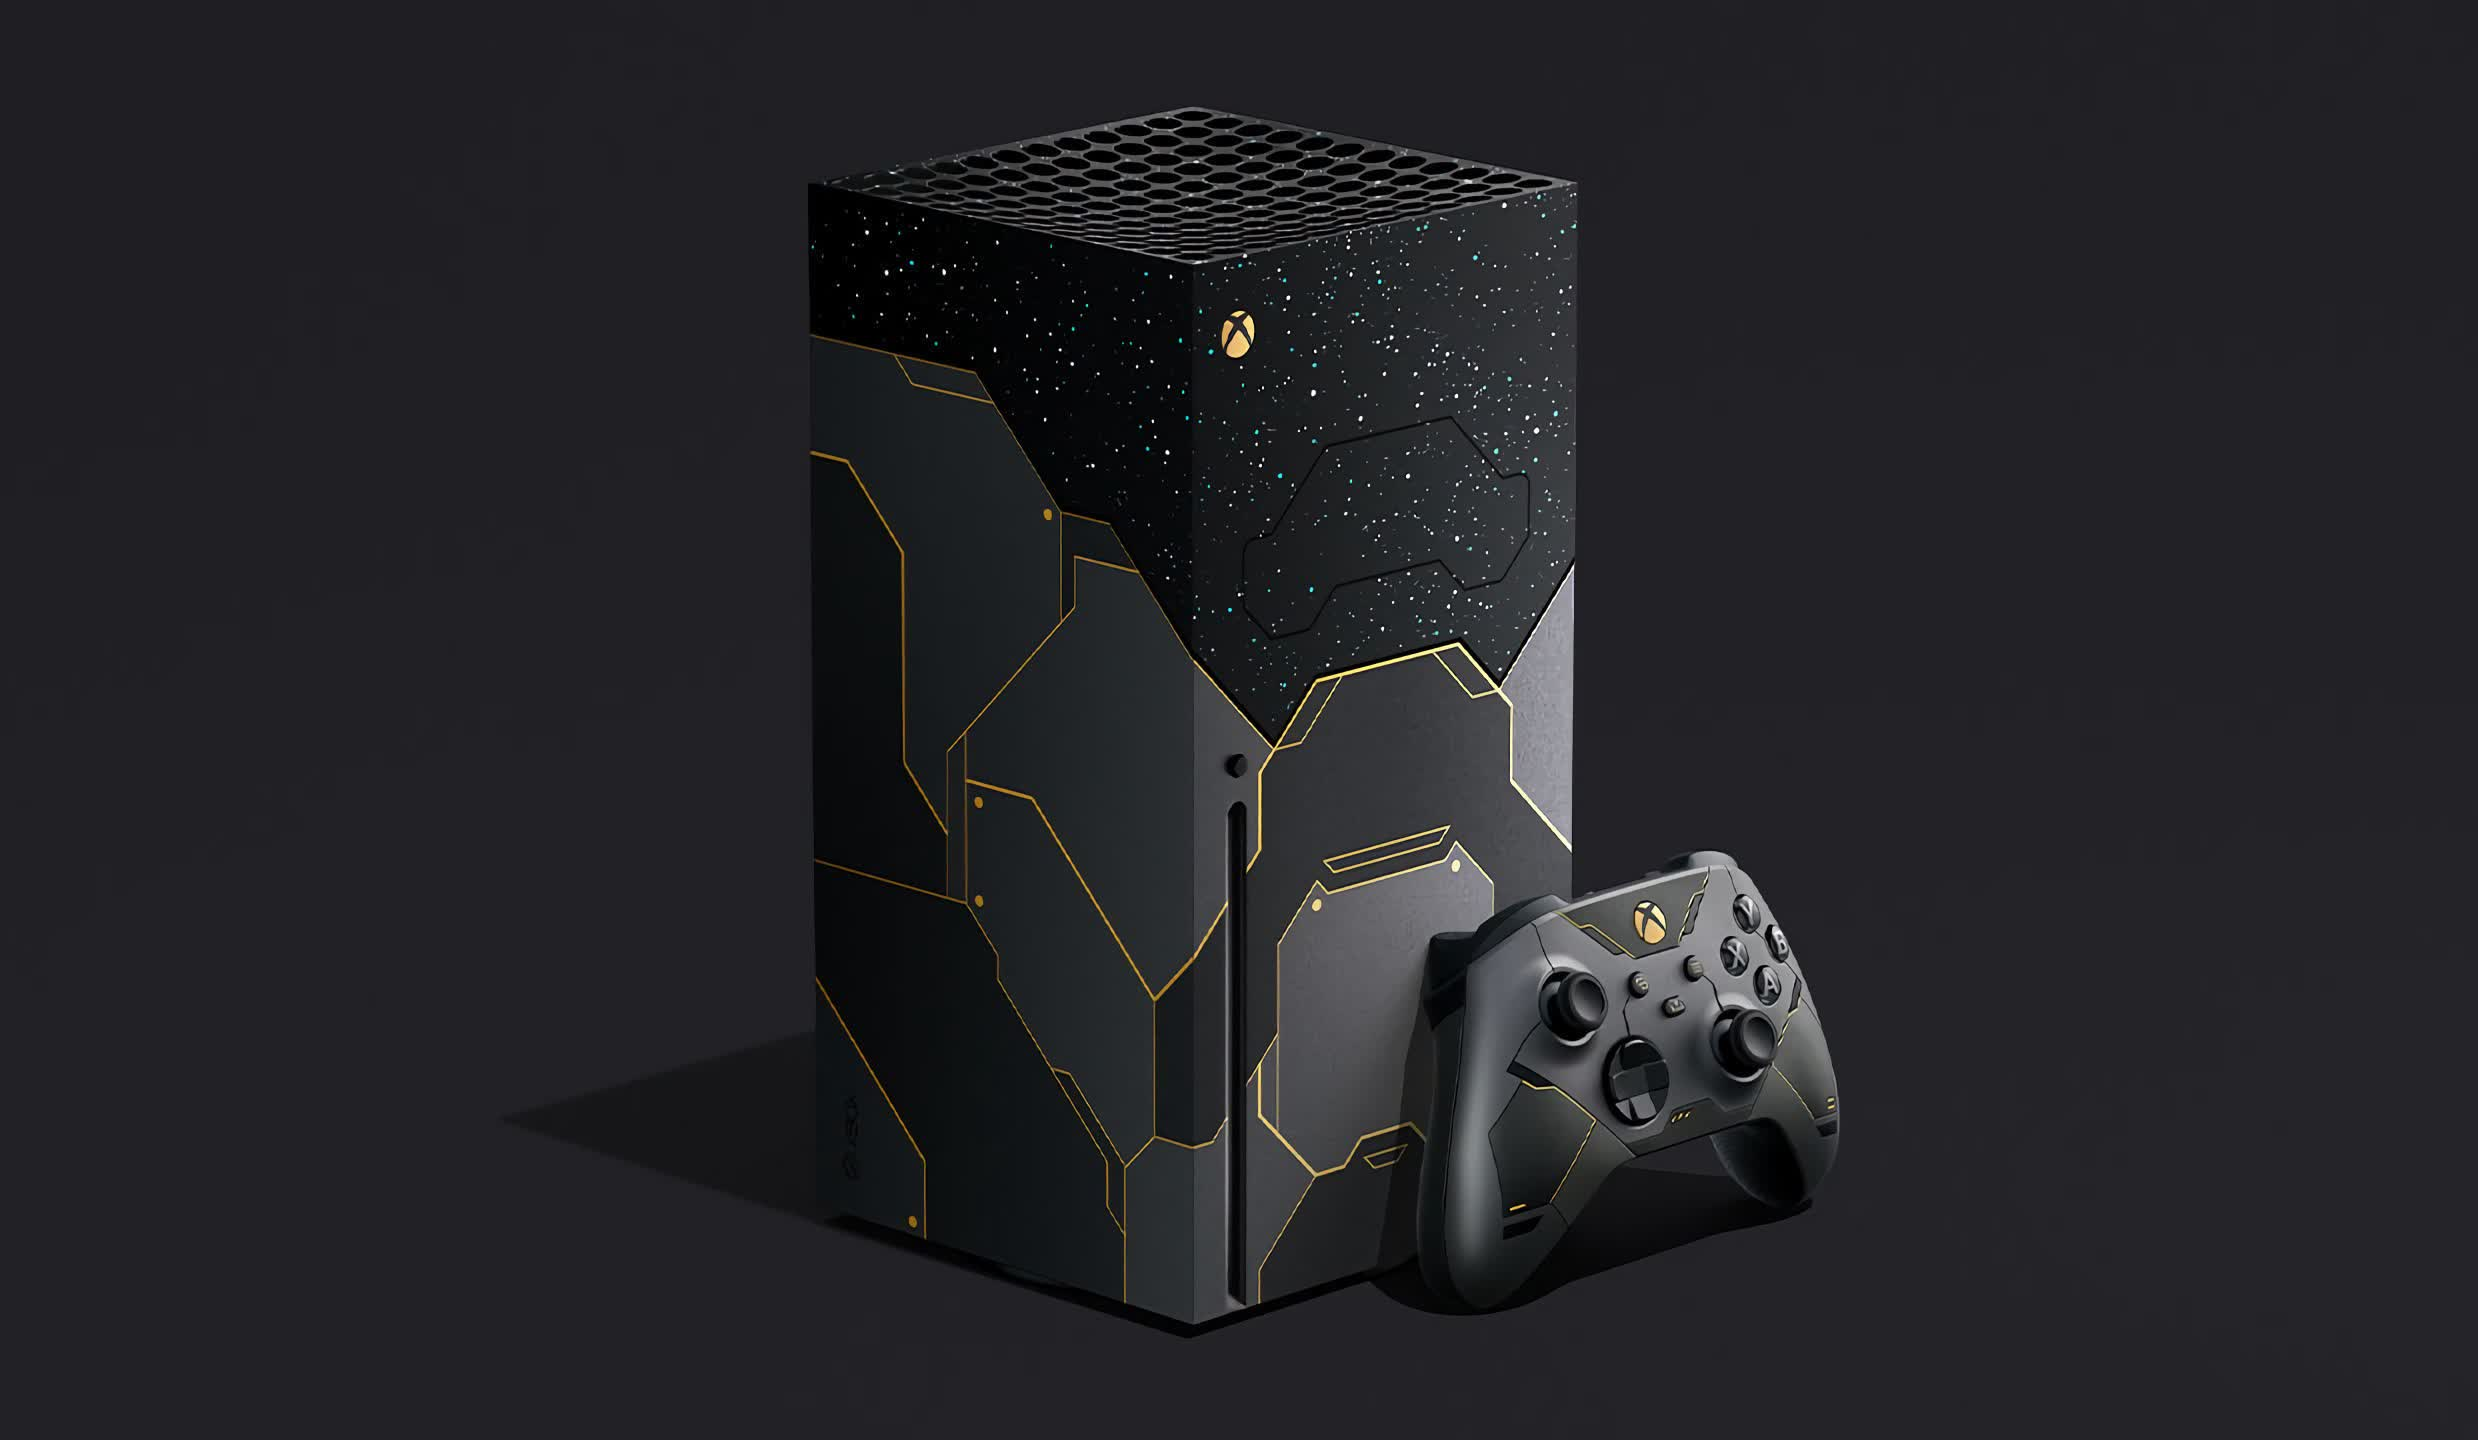 Box themed like Halo with infinite game